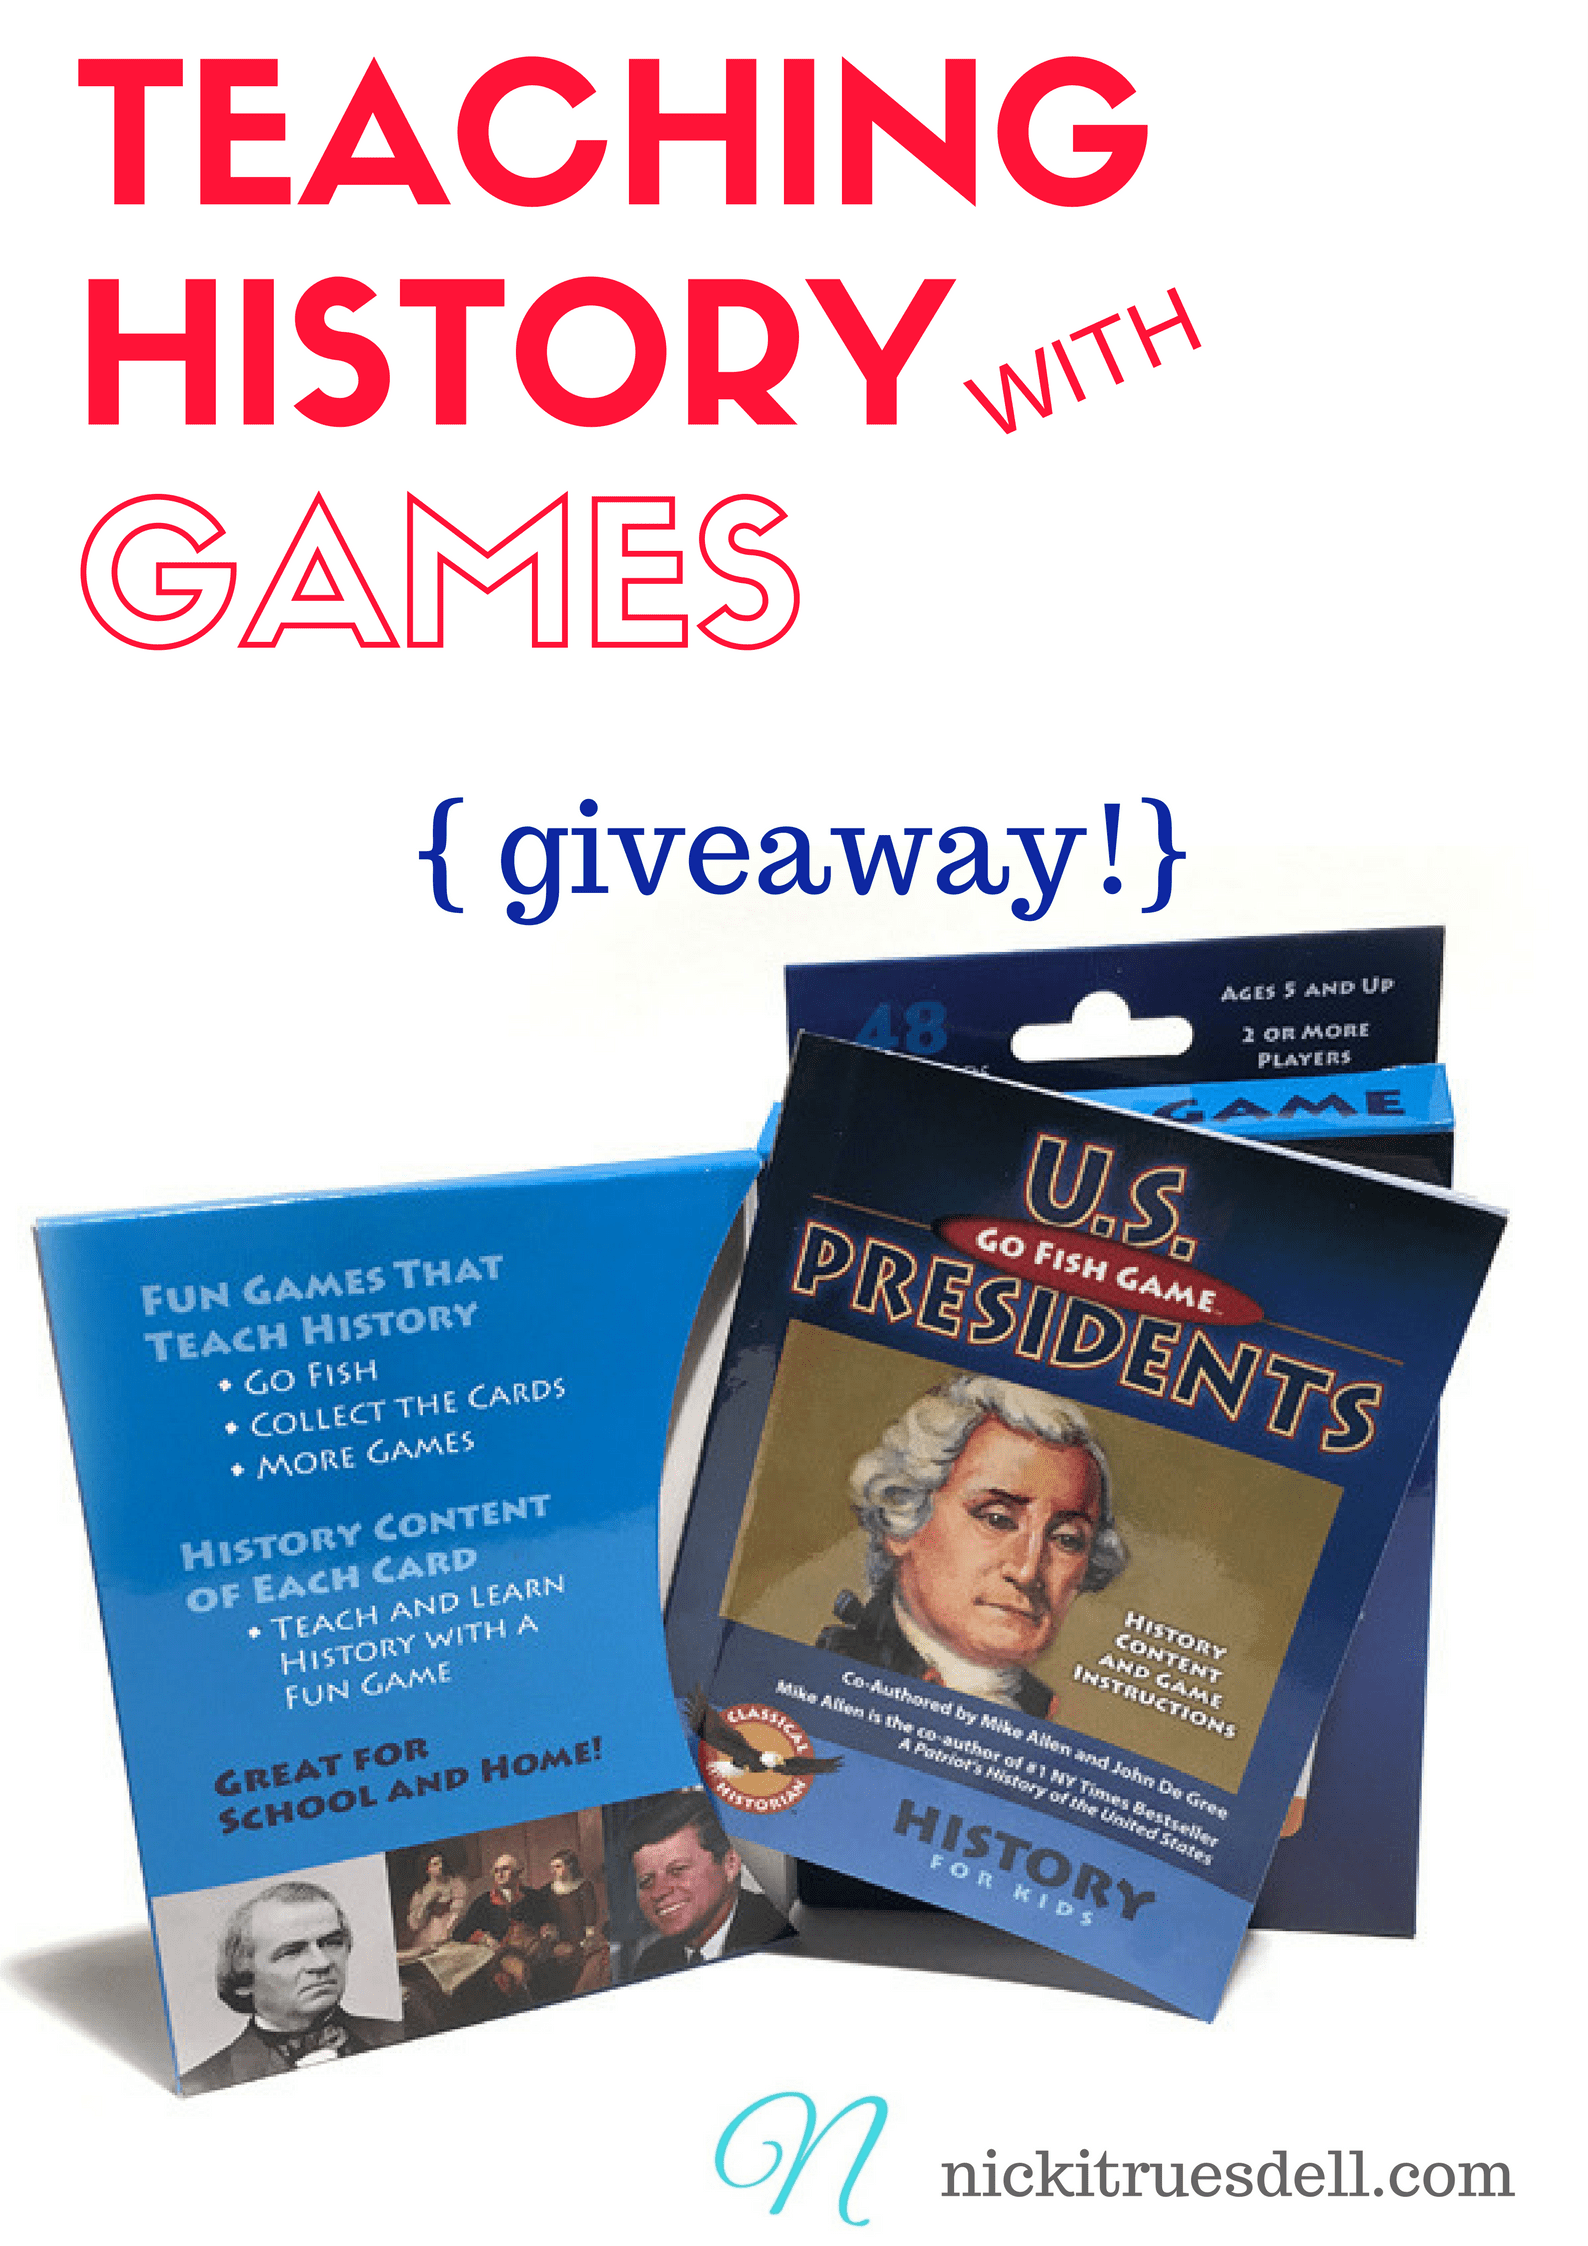 Imagine playing Go Fish with Presidents cards, Ancient History cards, or U. S. Constitution cards! THAT is what you get with games from The Classical Historian.